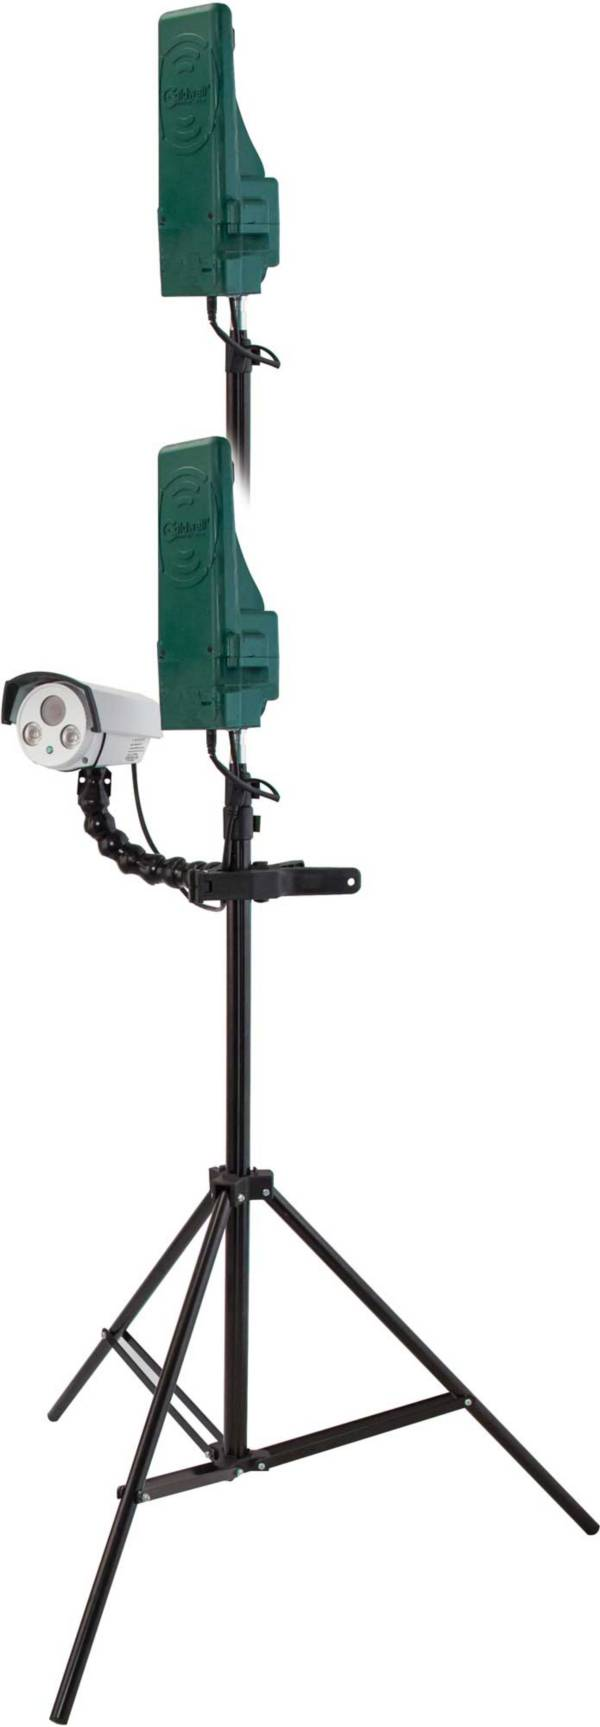 Caldwell Ballistic Precision Sight in Target Camera product image